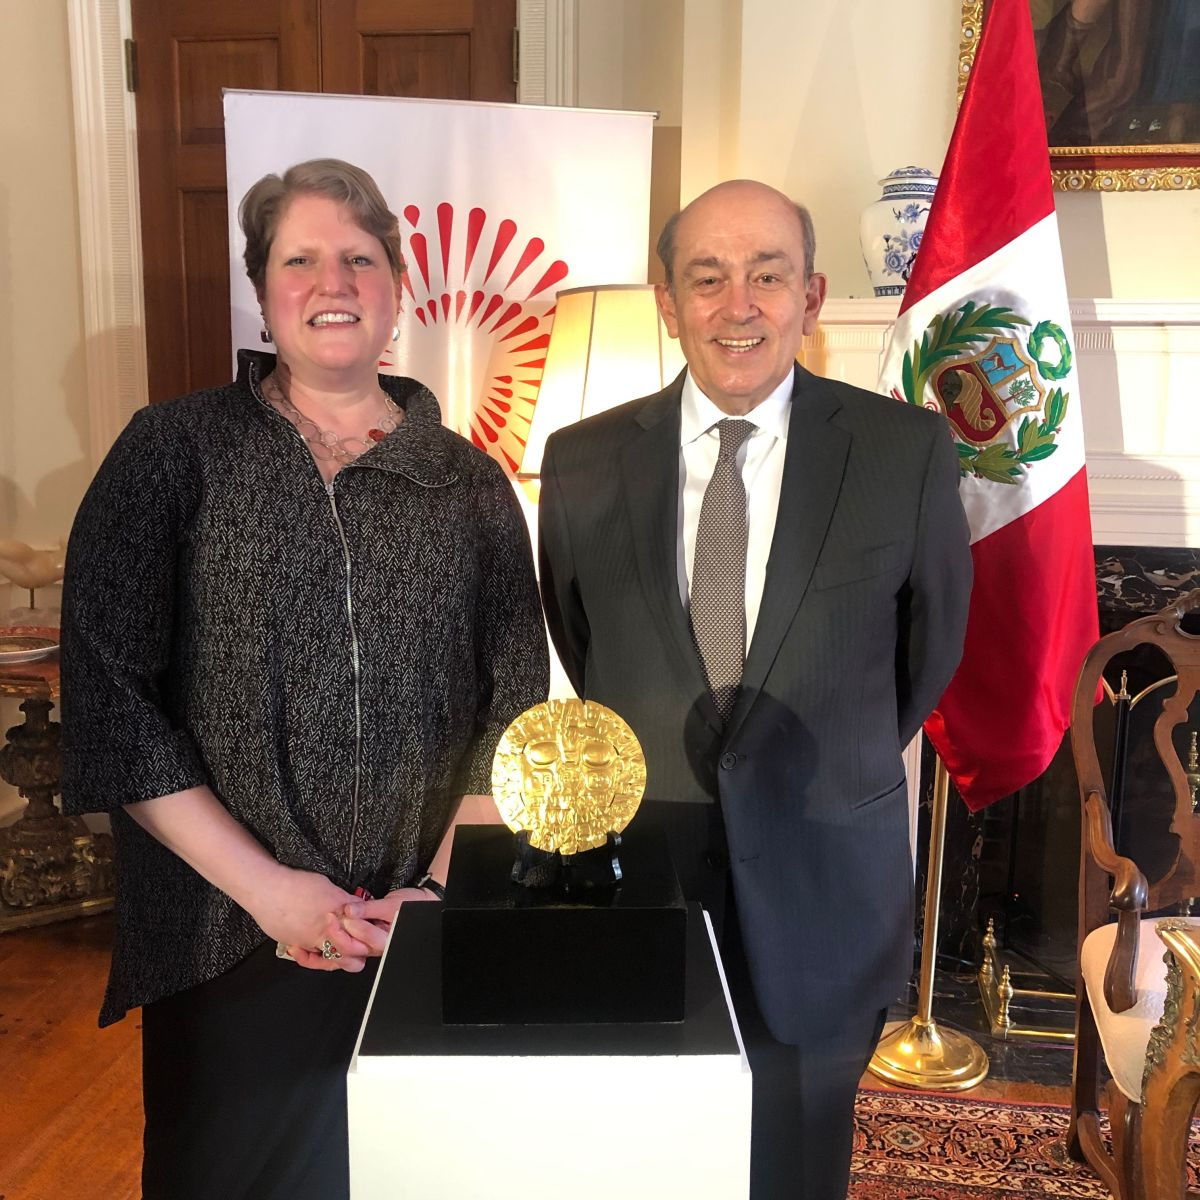 Pictured: Hugo de Zela, Peruvian ambassador to the United States and Machel Monenerkit, acting director of the National Museum of the American Indian.